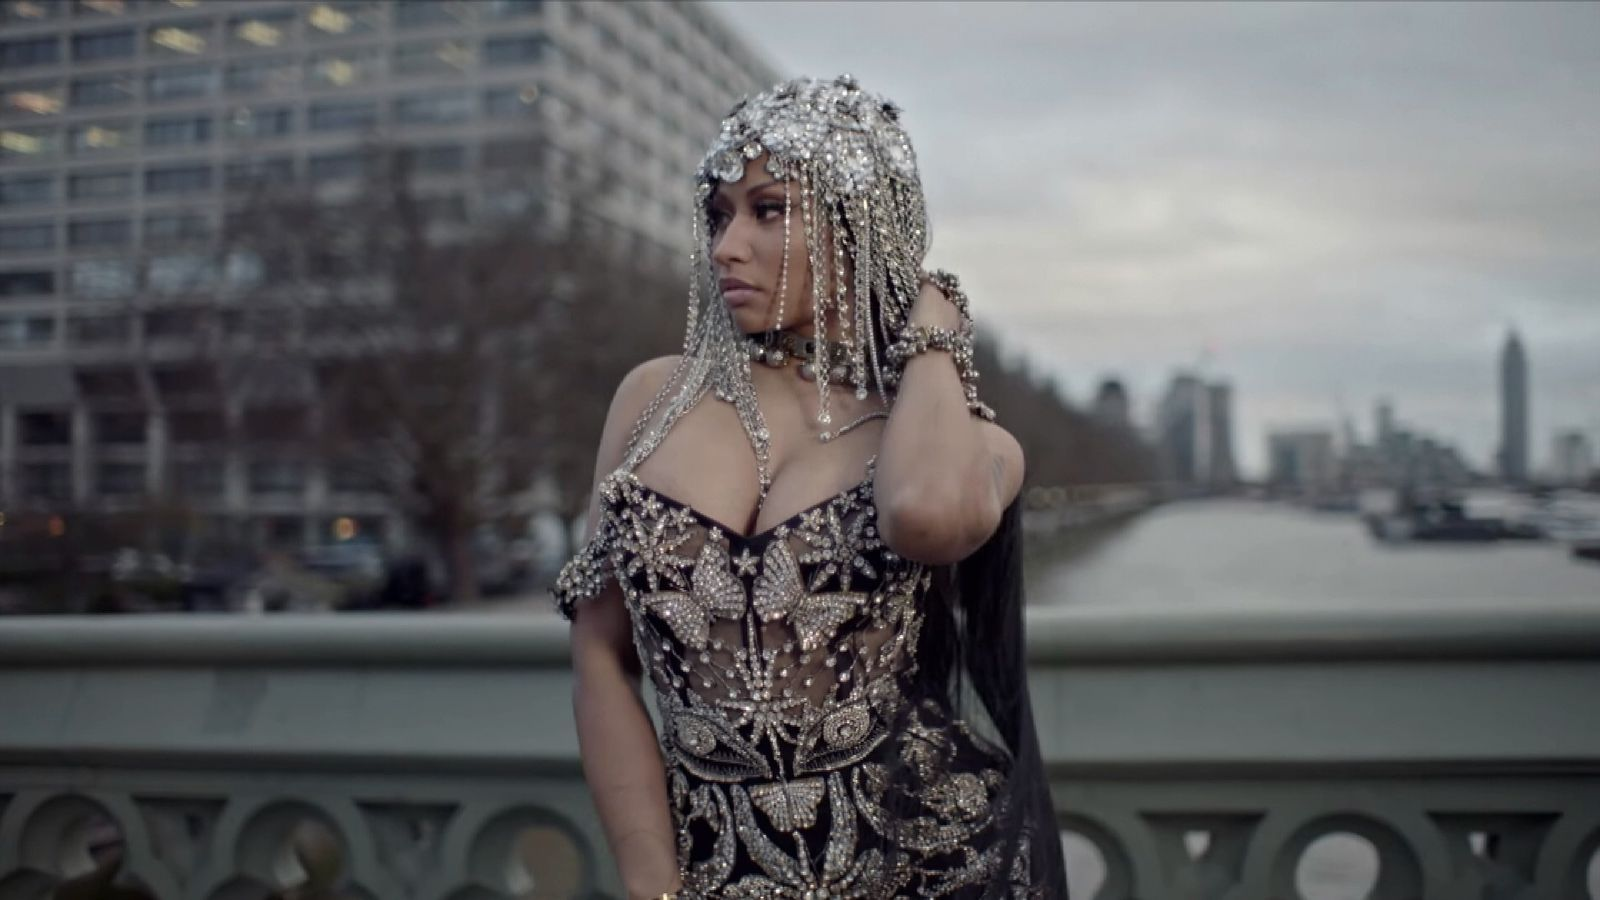 Nicki Minaj slammed for Westminster scenes in new video